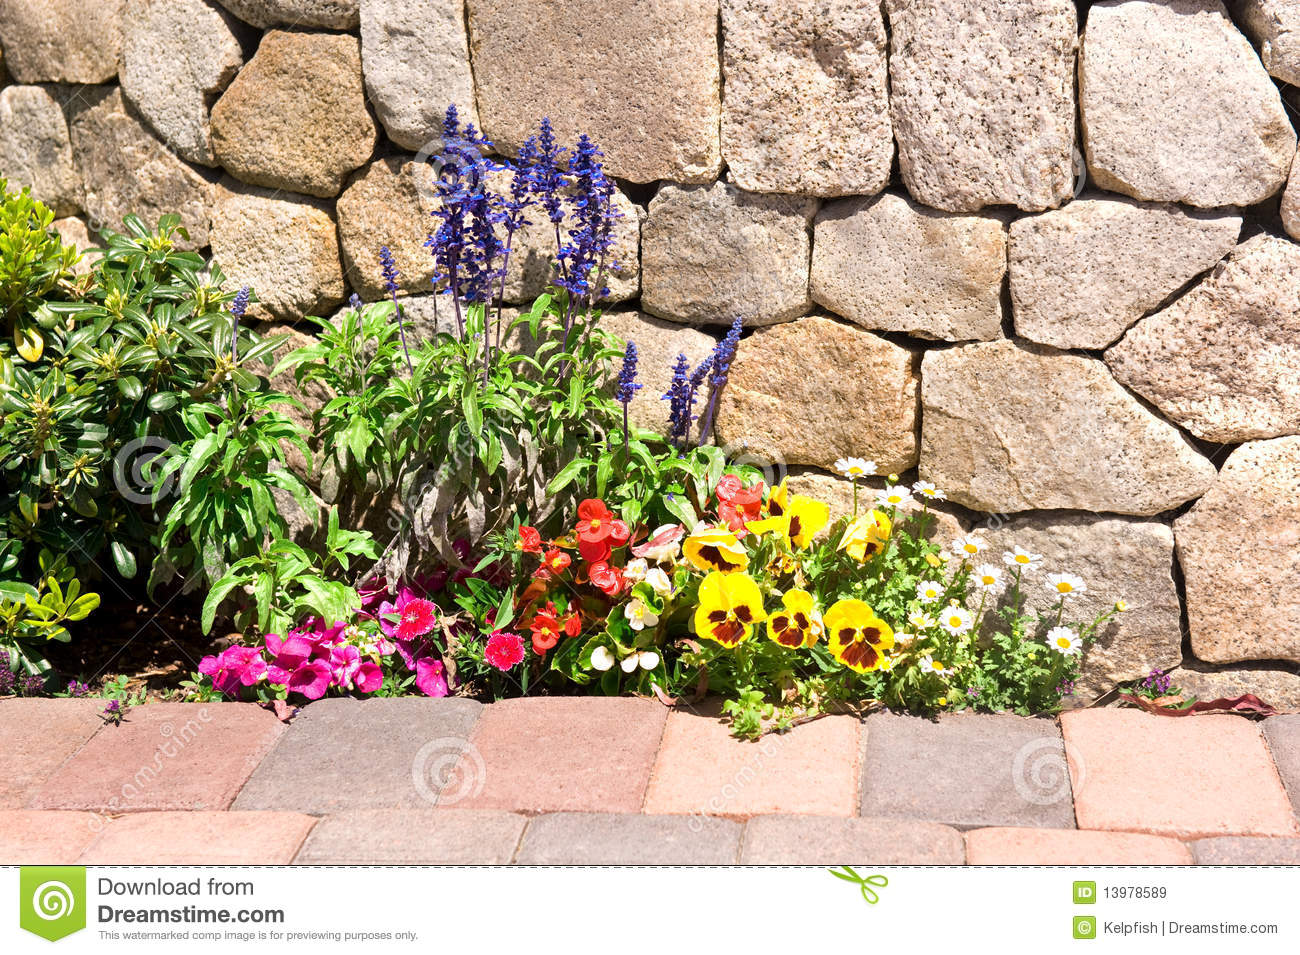 jardim pedras e flores : jardim pedras e flores:Stone Walls and Flower Gardens